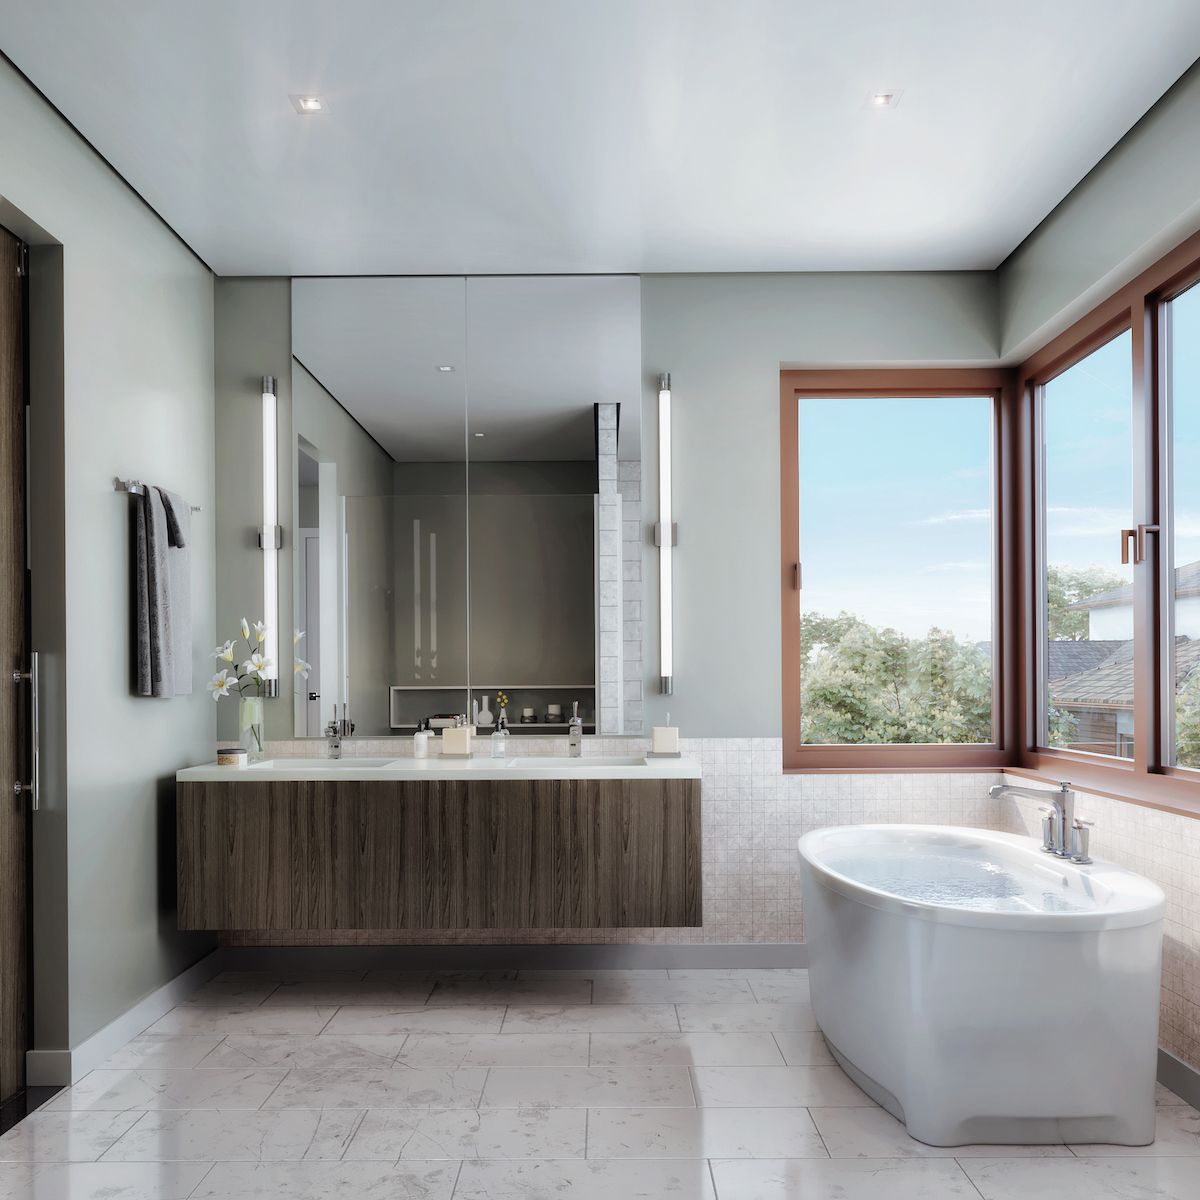 Bathroom featured in the Ibiza D By CC Homes in Miami-Dade County, FL